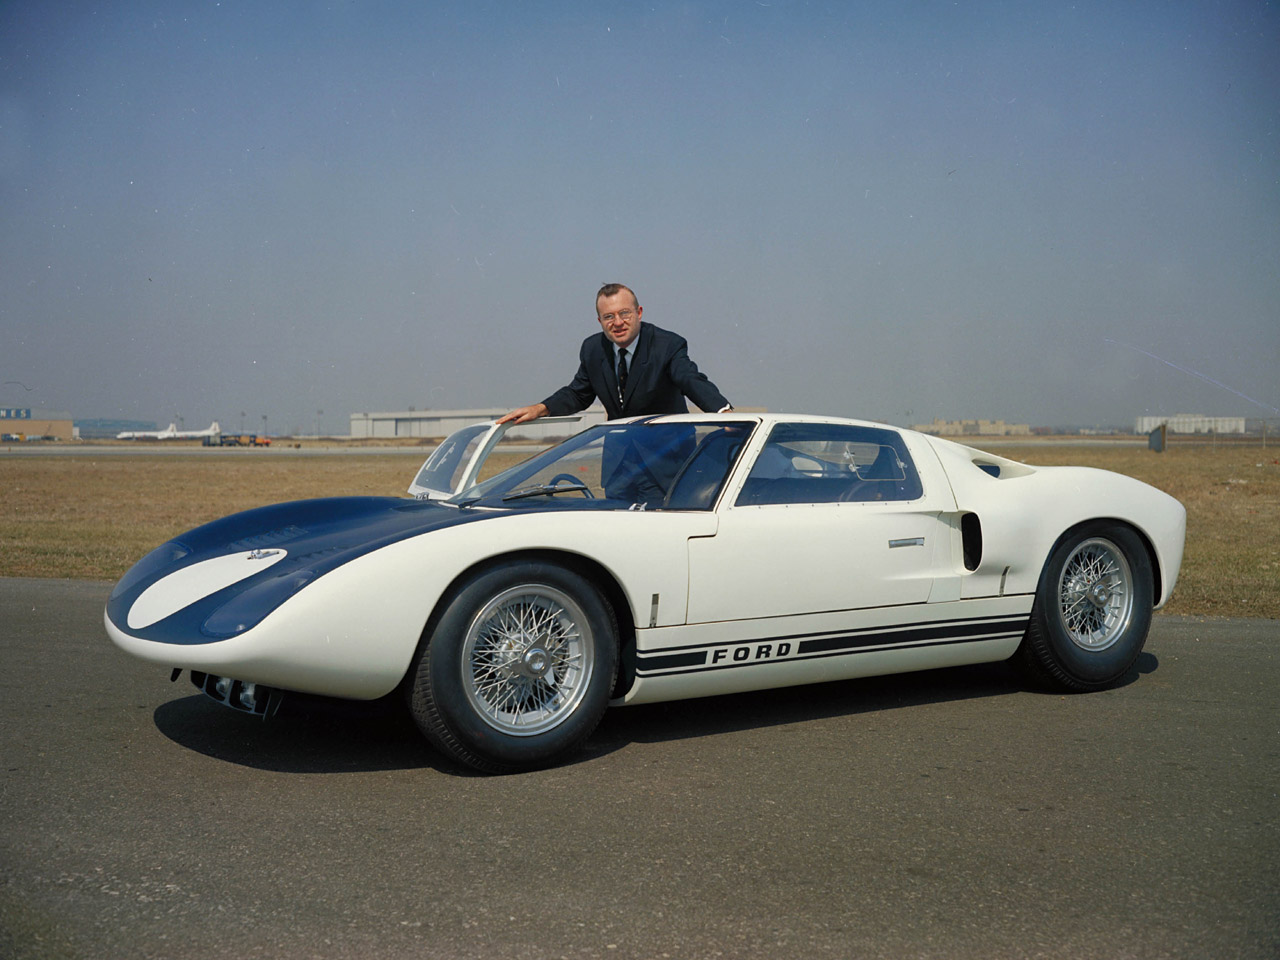 Ford GT40 1965 photo - 6